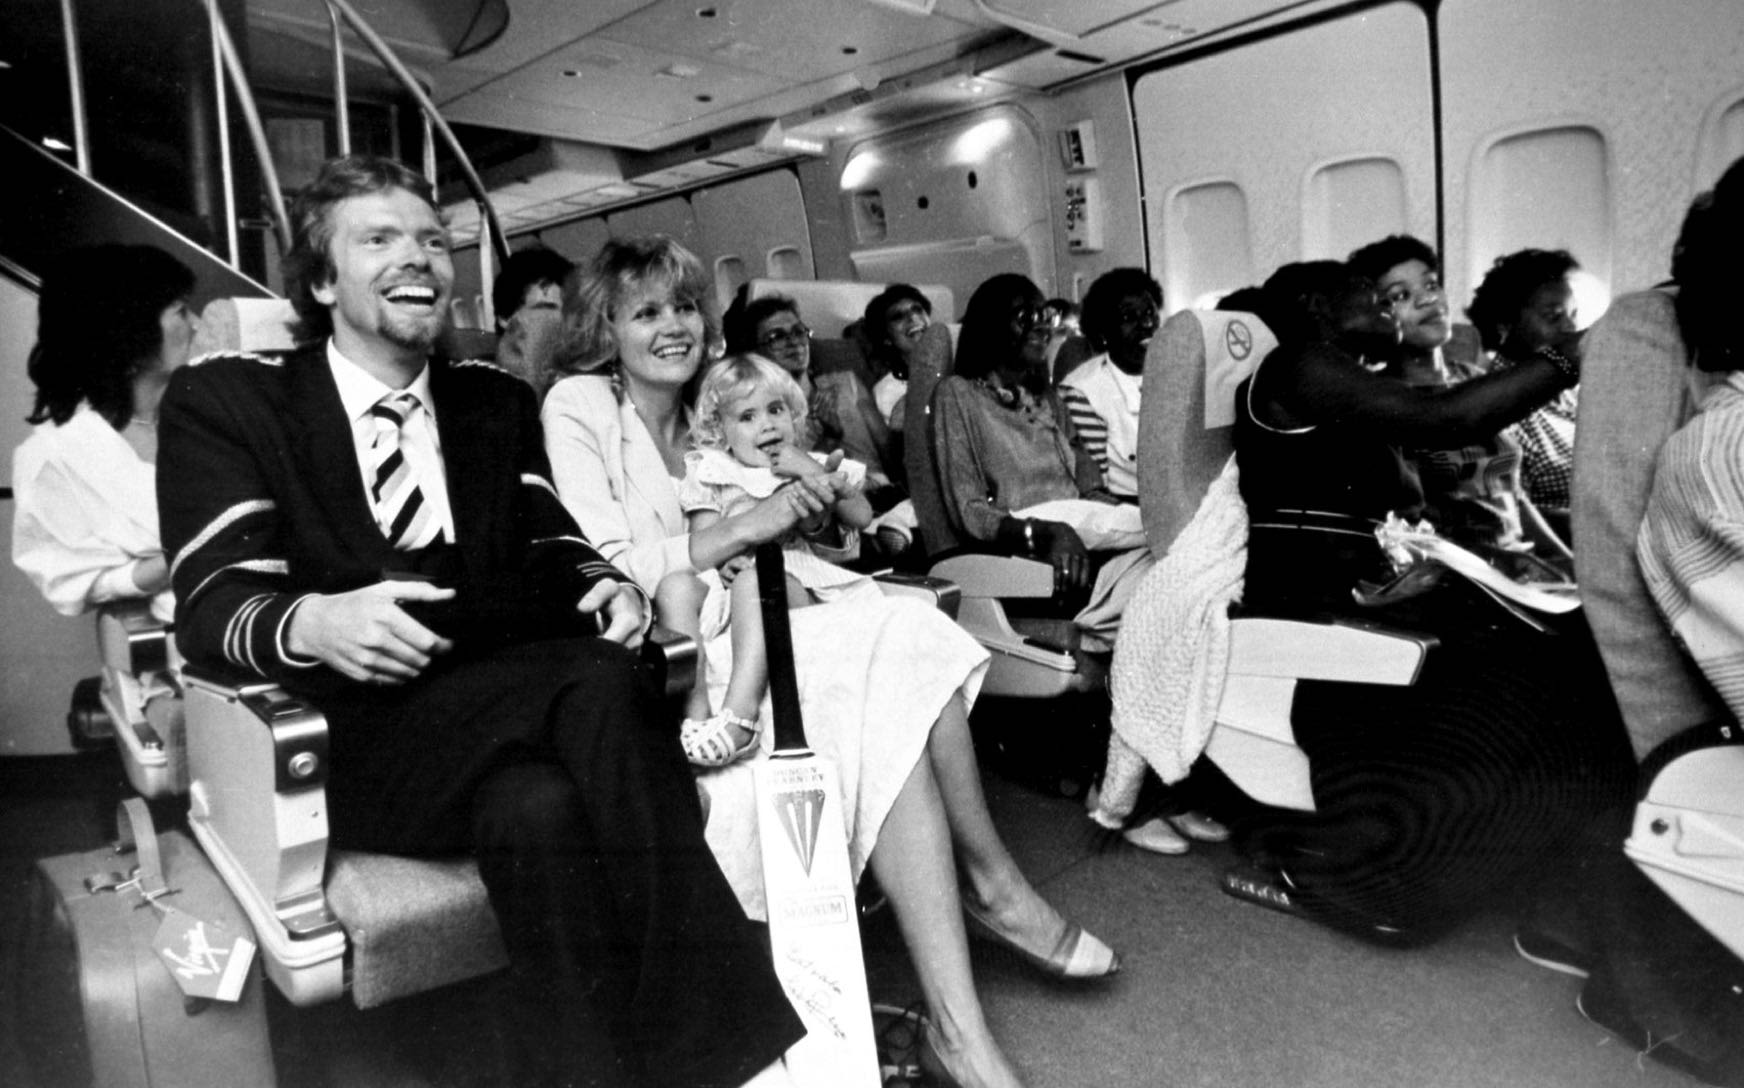 Richard and family sitting on their seats on Virgin Atlantic's inaugural flight